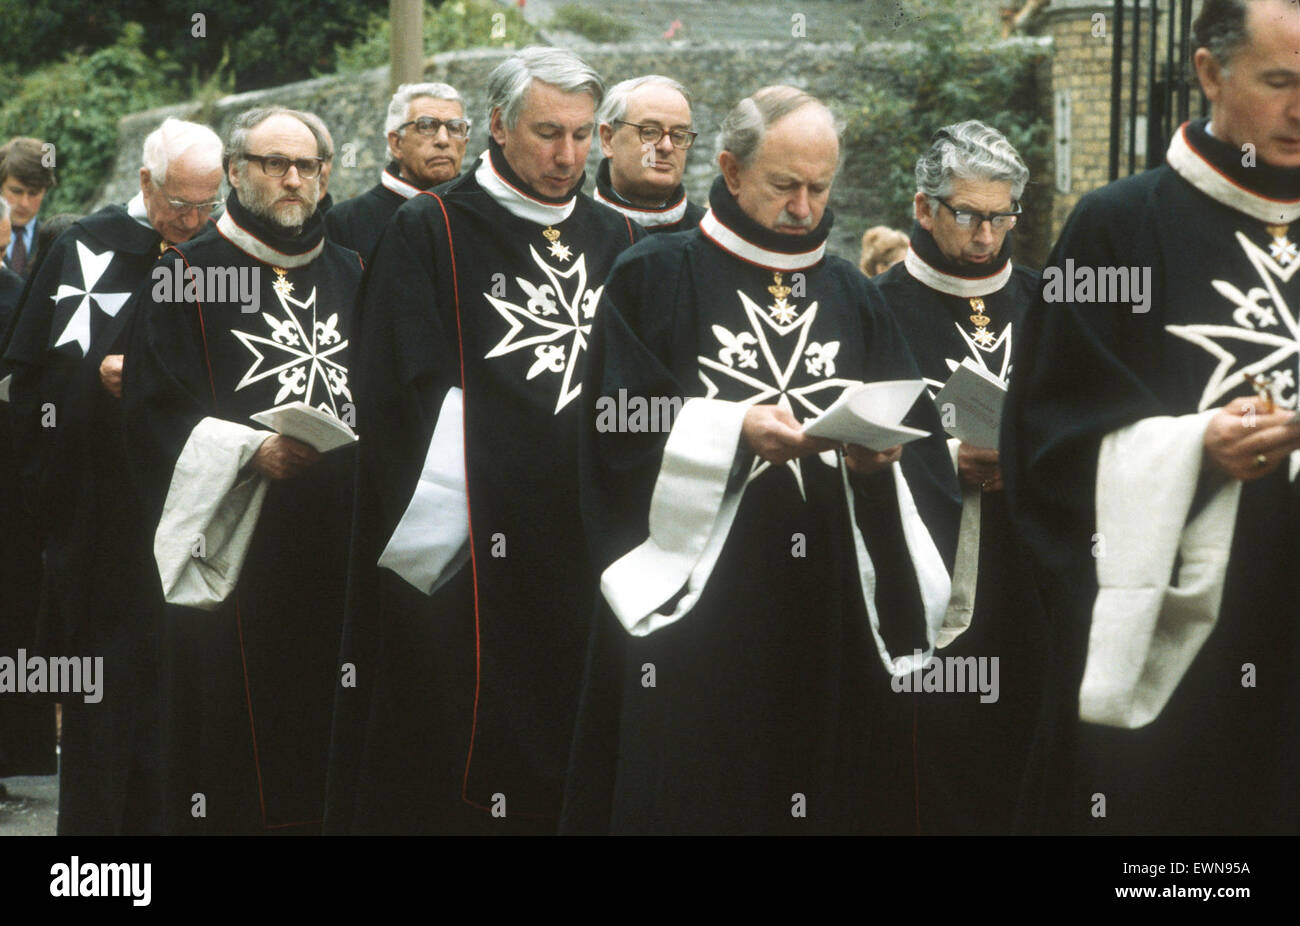 Knights of Malta in procession. Duke of Norfolk   is third from left - Stock Image